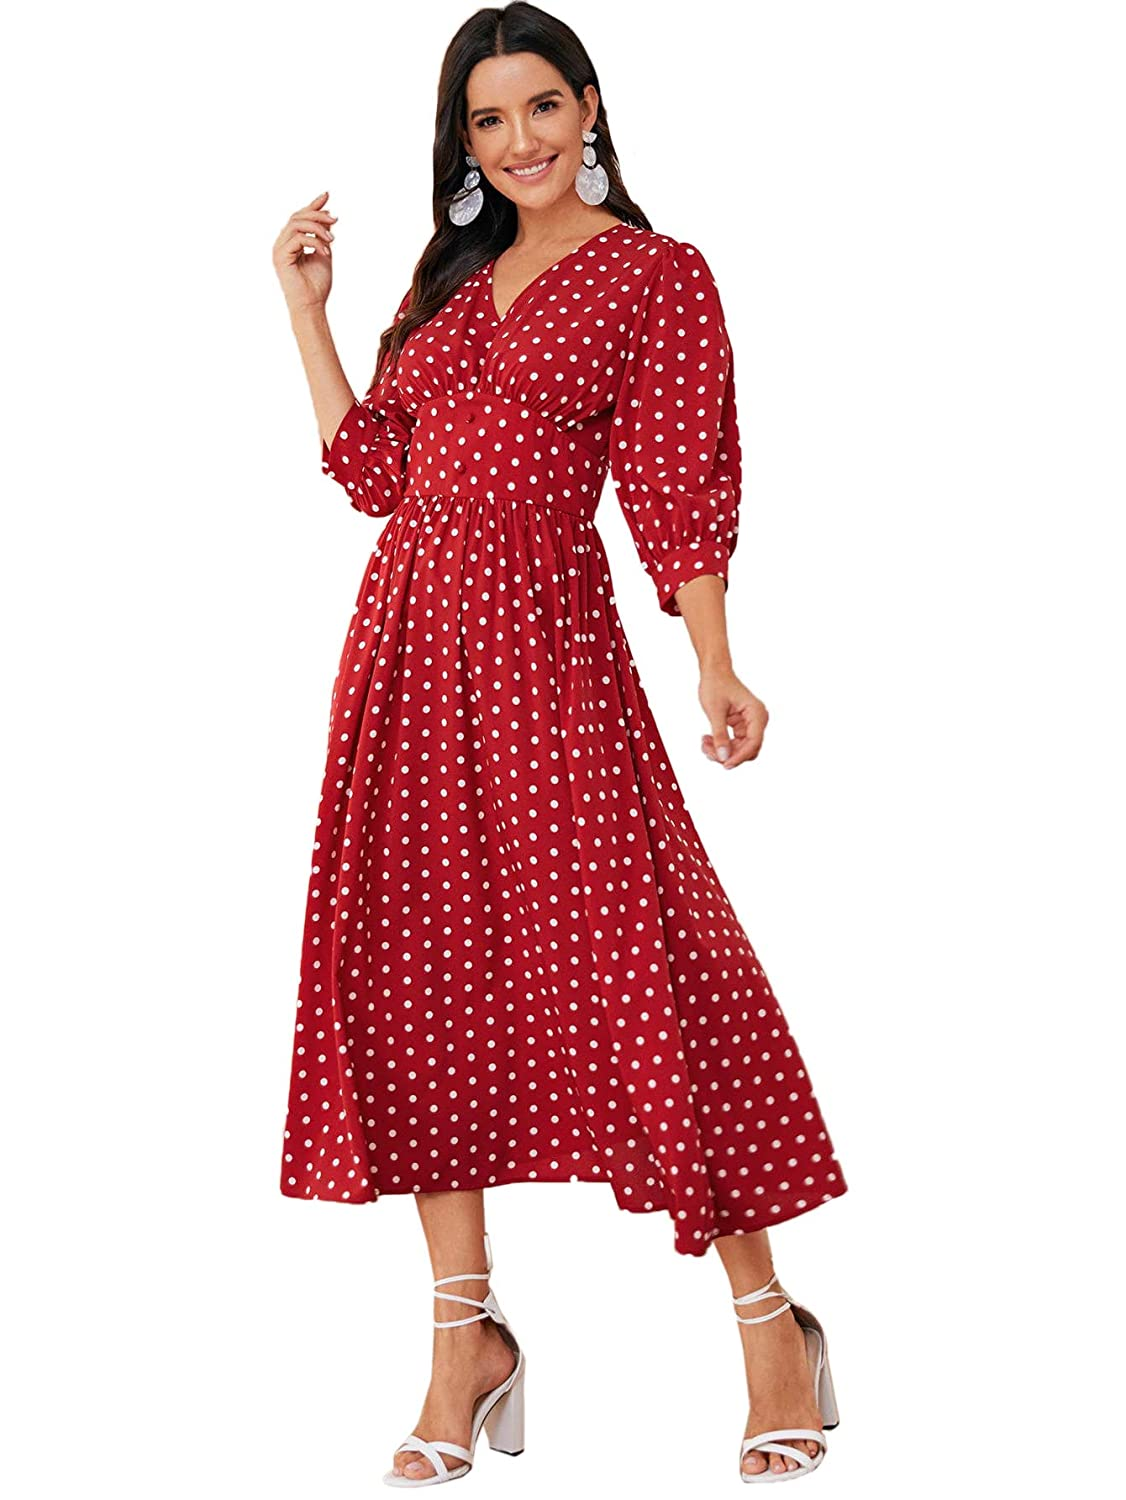 1930s Dresses | 30s Art Deco Dress Verdusa Womens Polka Dot Buttoned Bishop 3/4 Sleeve Fit & Flare Maxi Dress $37.99 AT vintagedancer.com